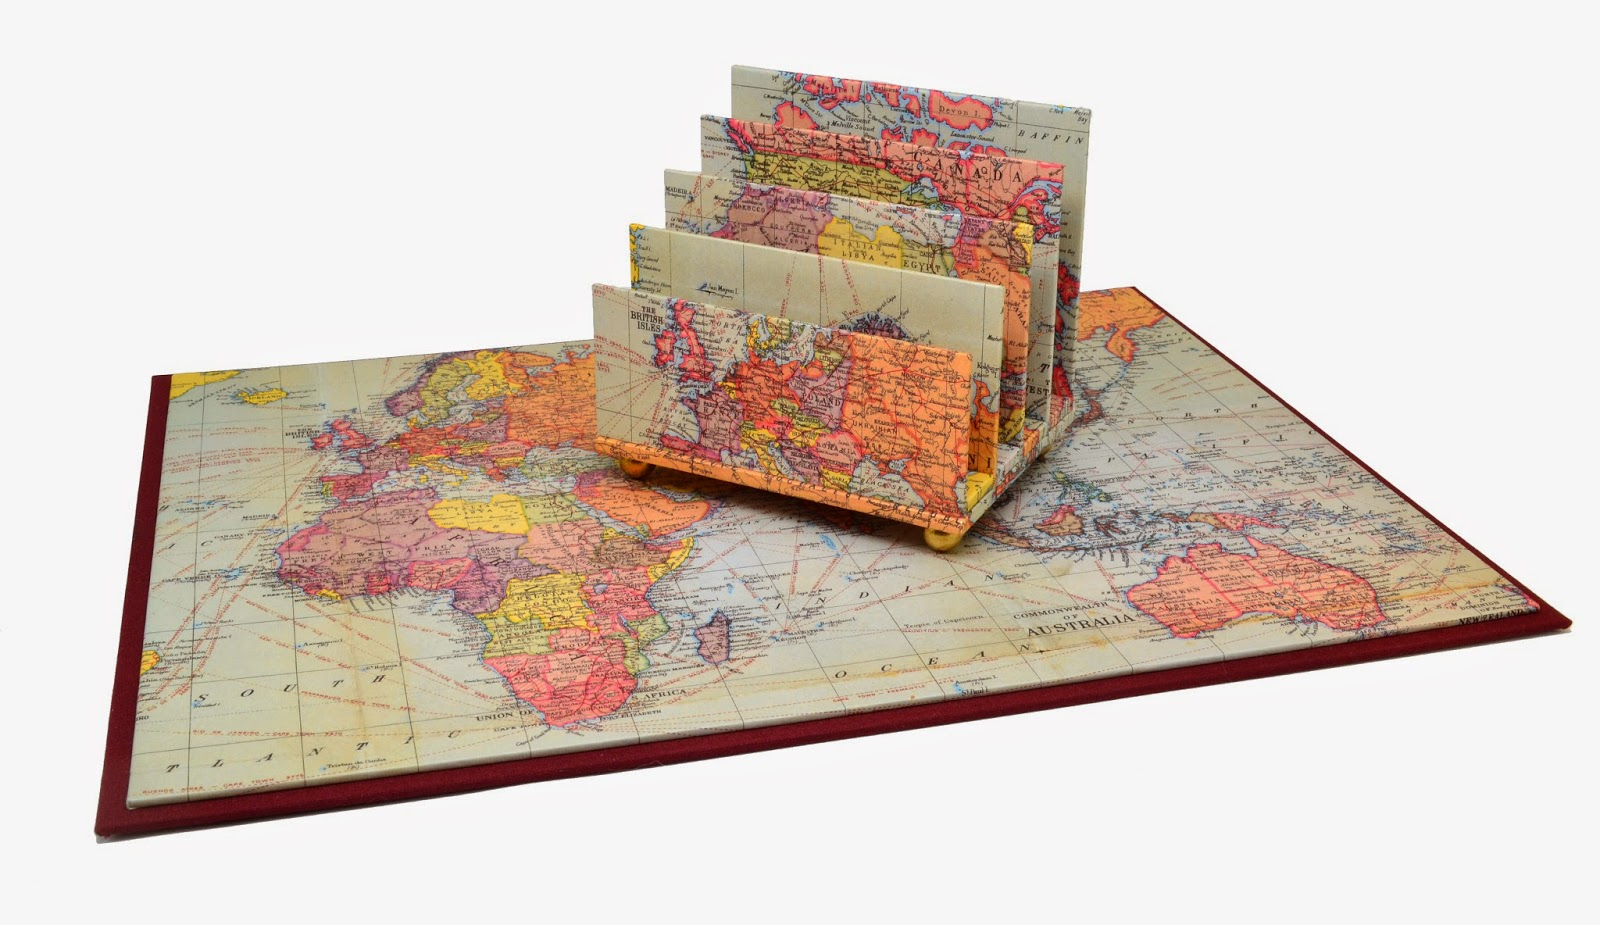 Parvum opus september 2014 a desk pad and petite letter sorter made in cavallinis vintage world map paper paired with italian book cloth in a deep wine color gumiabroncs Image collections